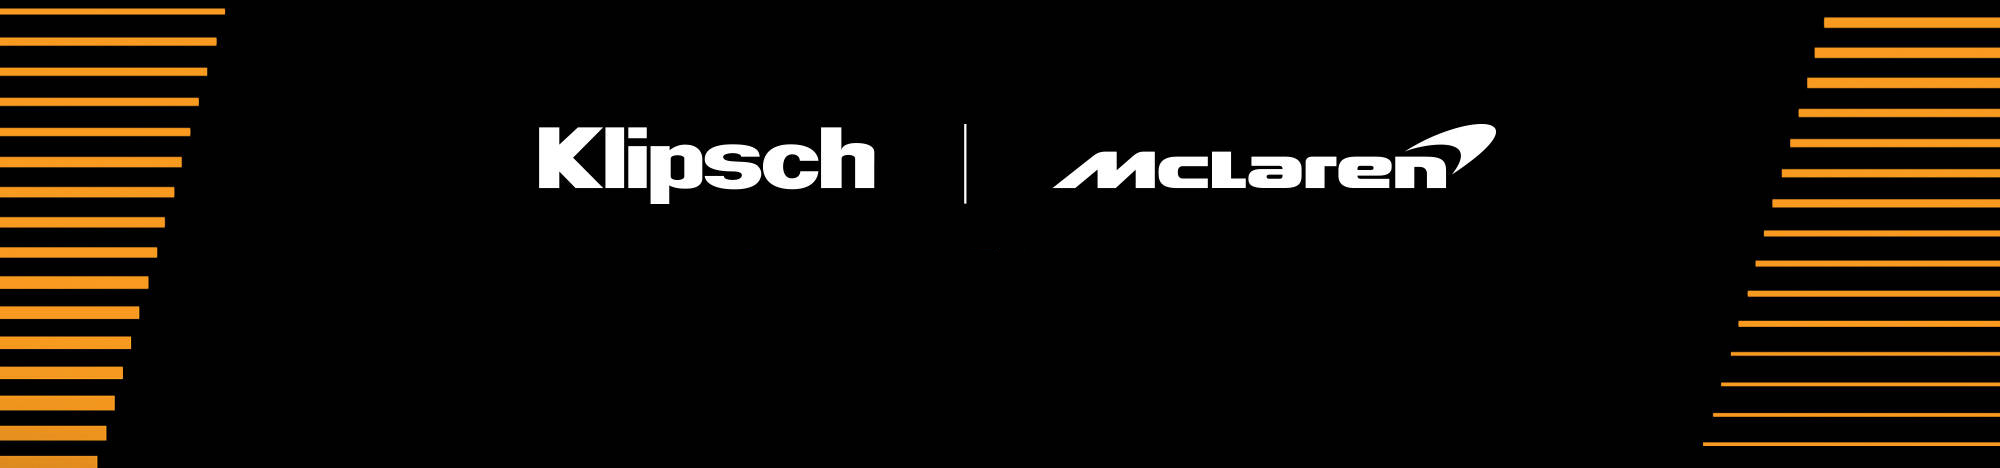 Klipsch and Mc Laren Welcome to the Speed of Sound Desktop